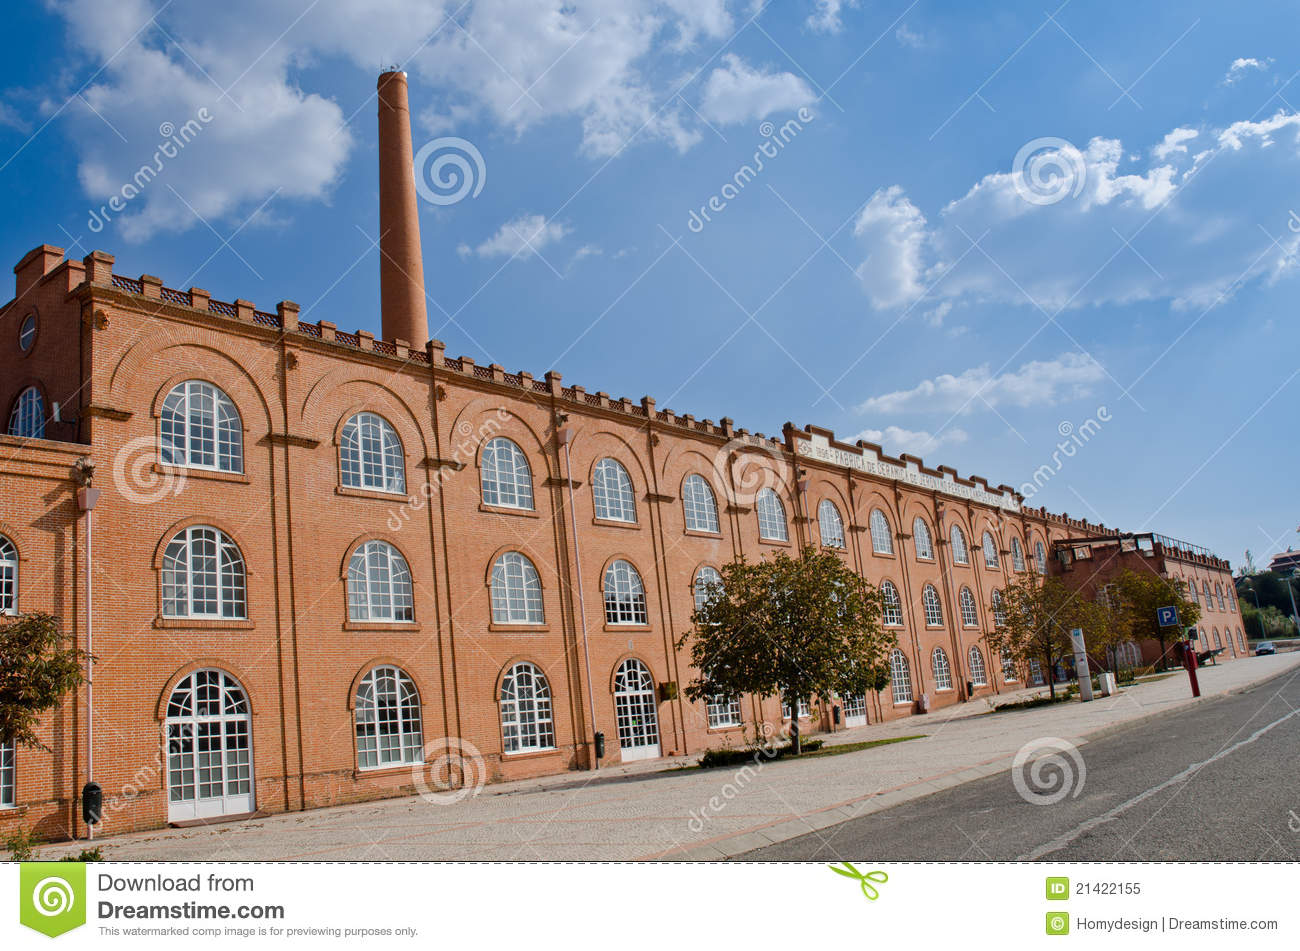 Old Factory Building Royalty Free Stock Photo - Image: 21422155 Old Factory Building